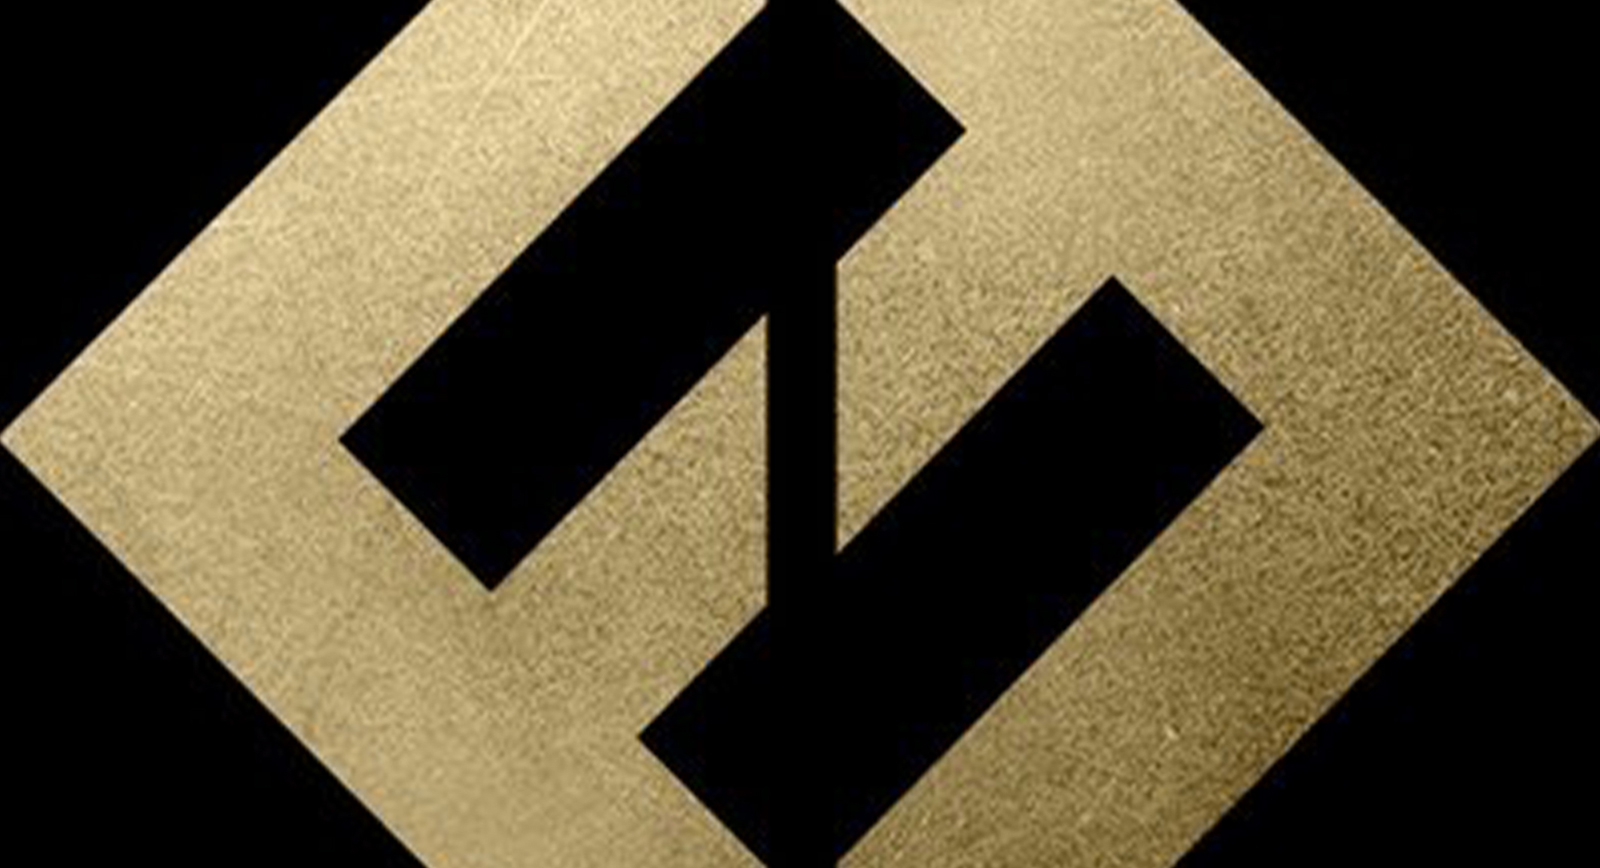 Foo Fighters Concrete And Gold Tour Adds More Dates To Extend